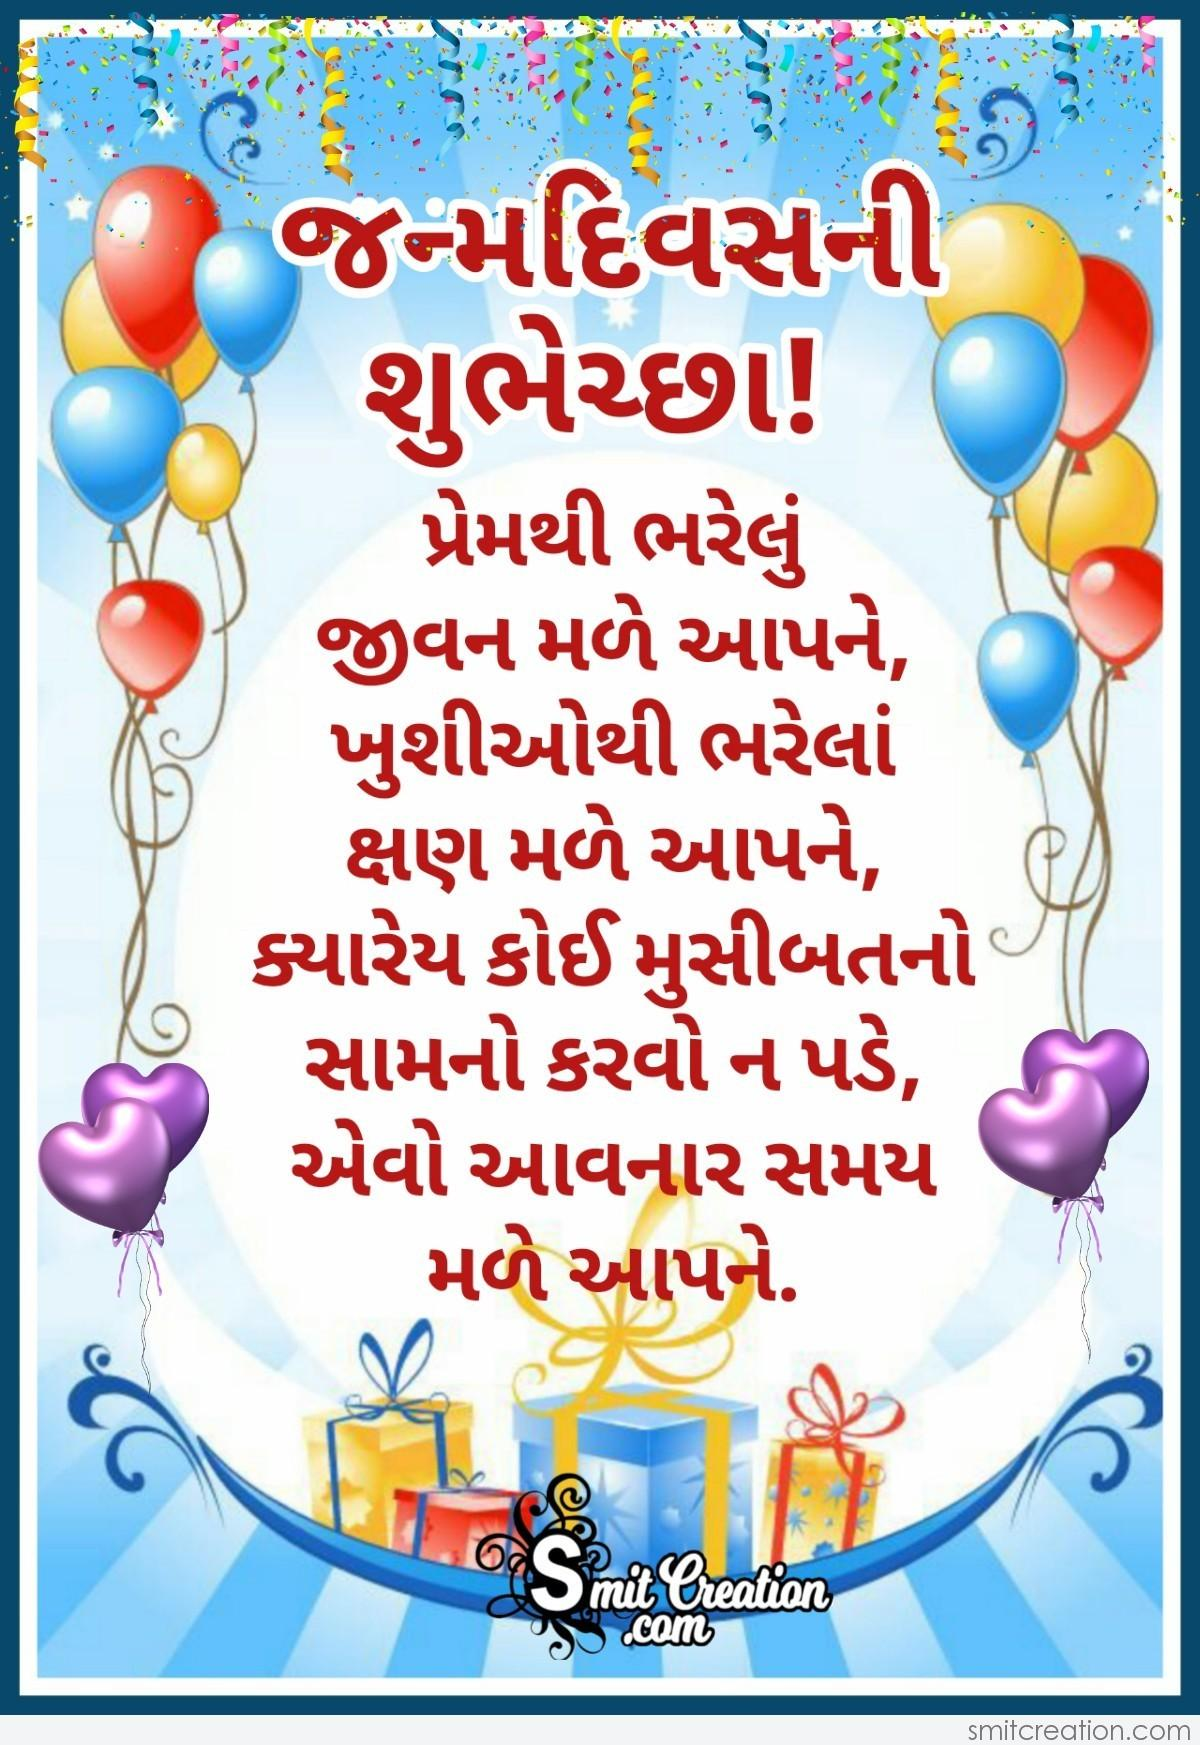 Birthday Gujarati Wishes Pictures And Graphics Smitcreation Com